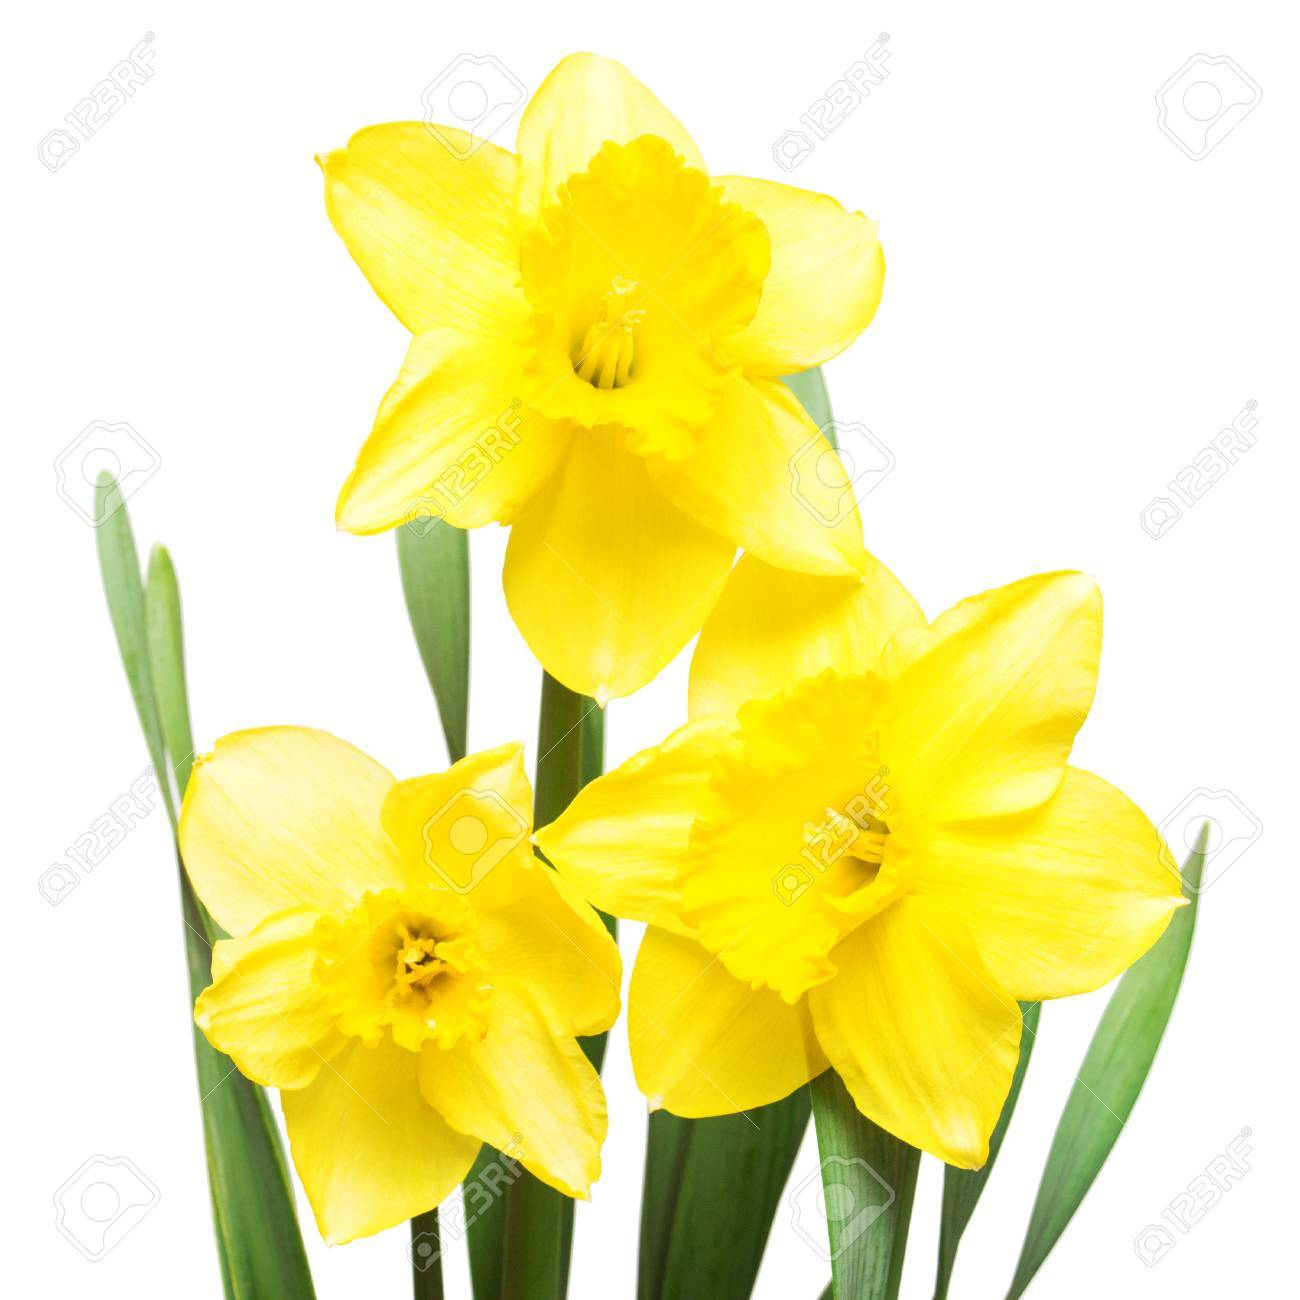 Bouquet Of Yellow Daffodils Flowers Isolated On White Background     Bouquet of yellow daffodils flowers isolated on white background  Flat lay   top view Stock